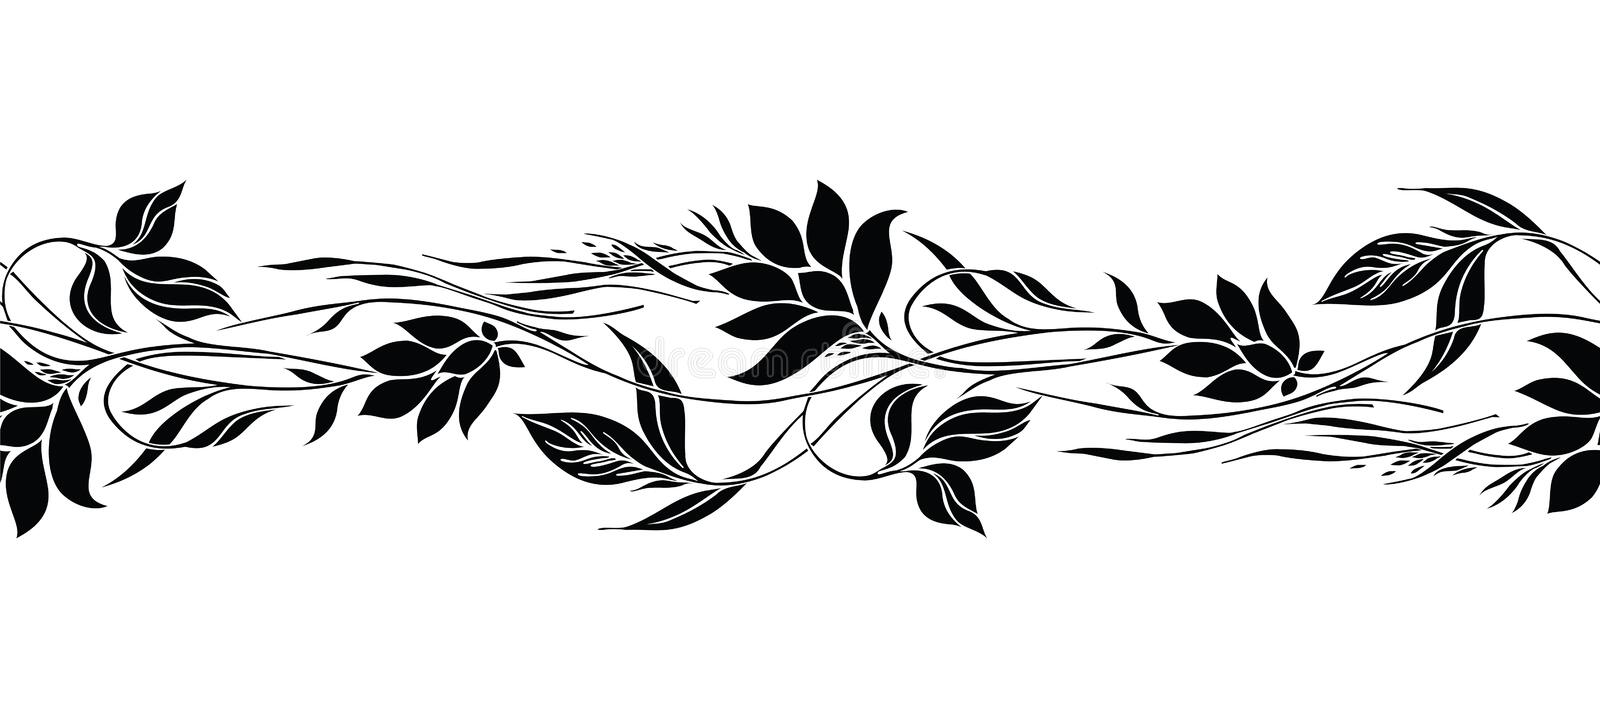 Black And White Round Floral Border Stock Vector - Illustration of floral,  white: 115493129